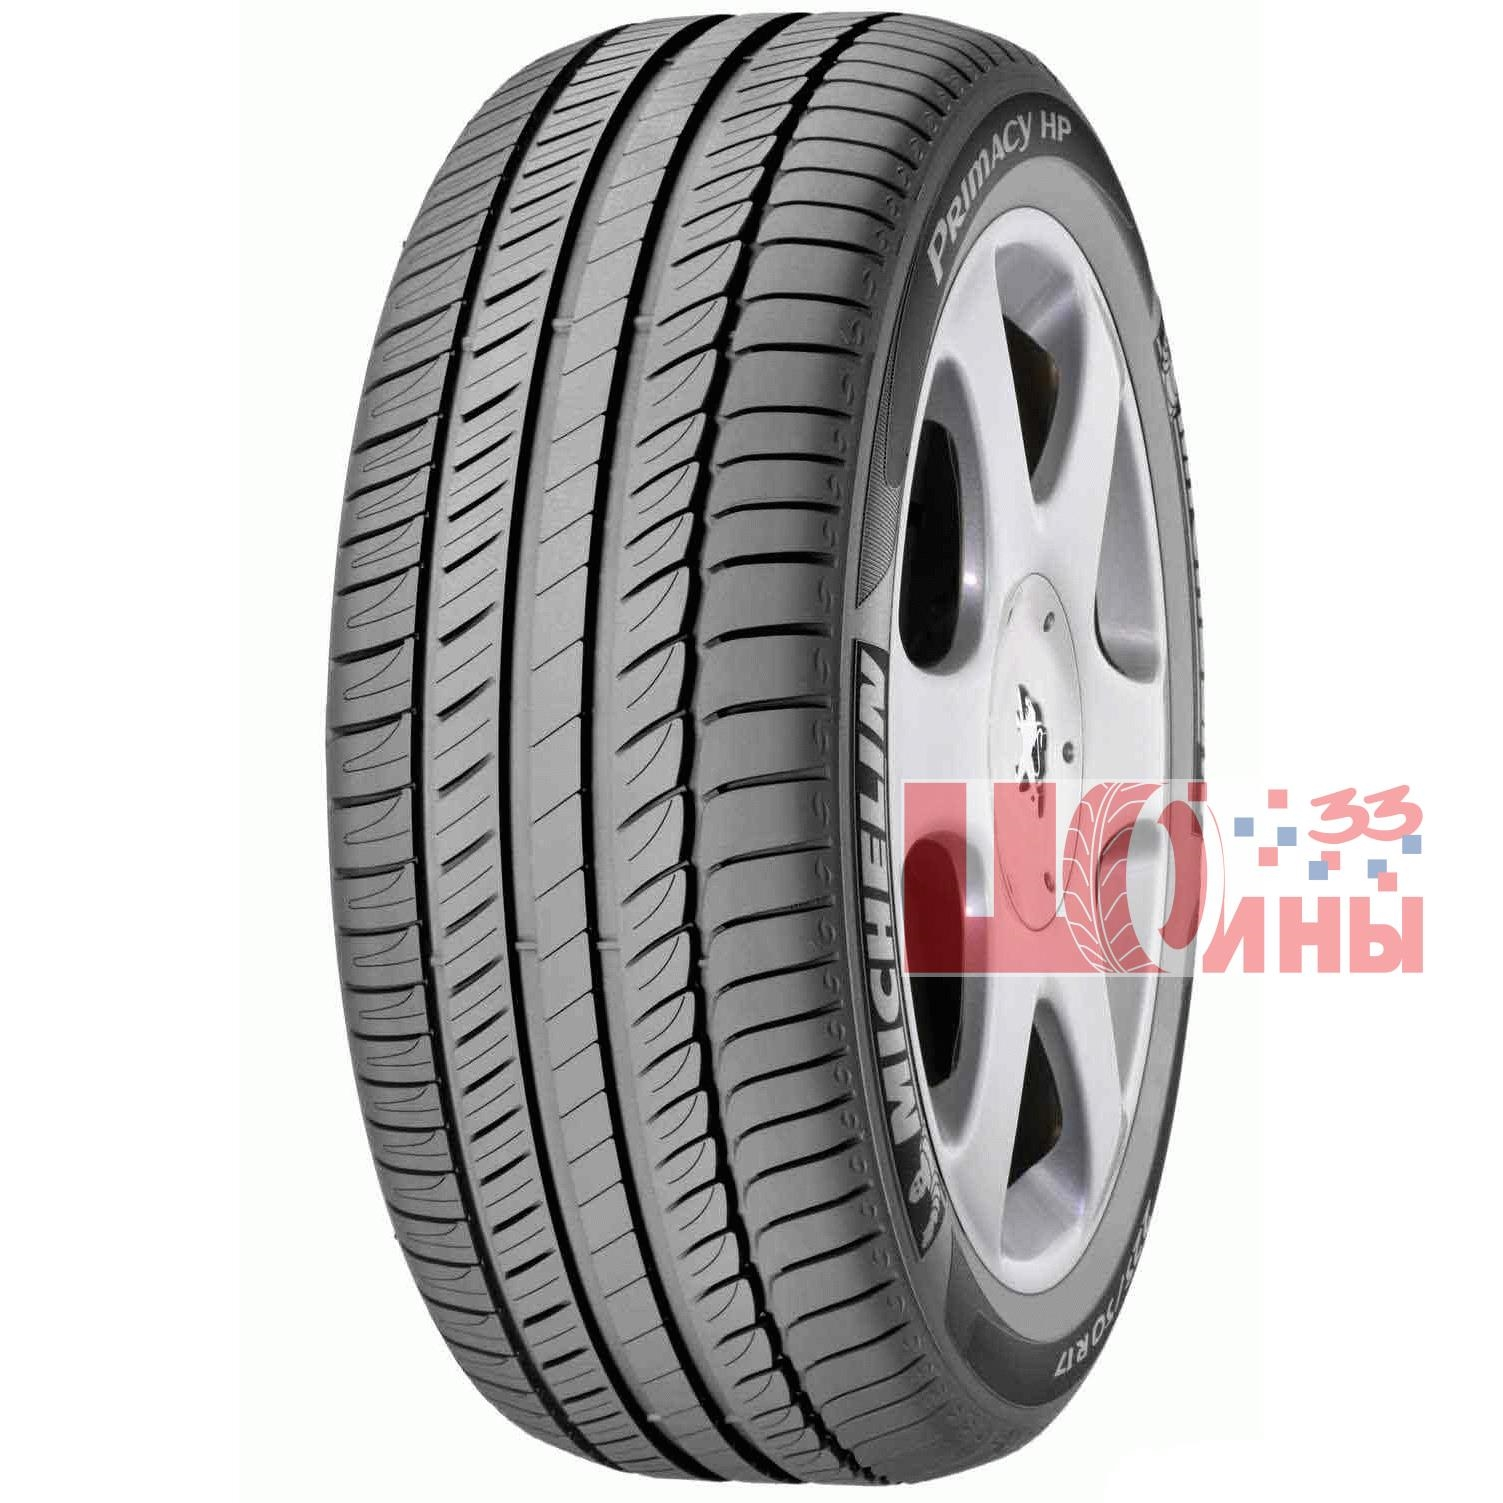 Б/У 205/55 R17 Лето MICHELIN Primacy HP Кат. 5